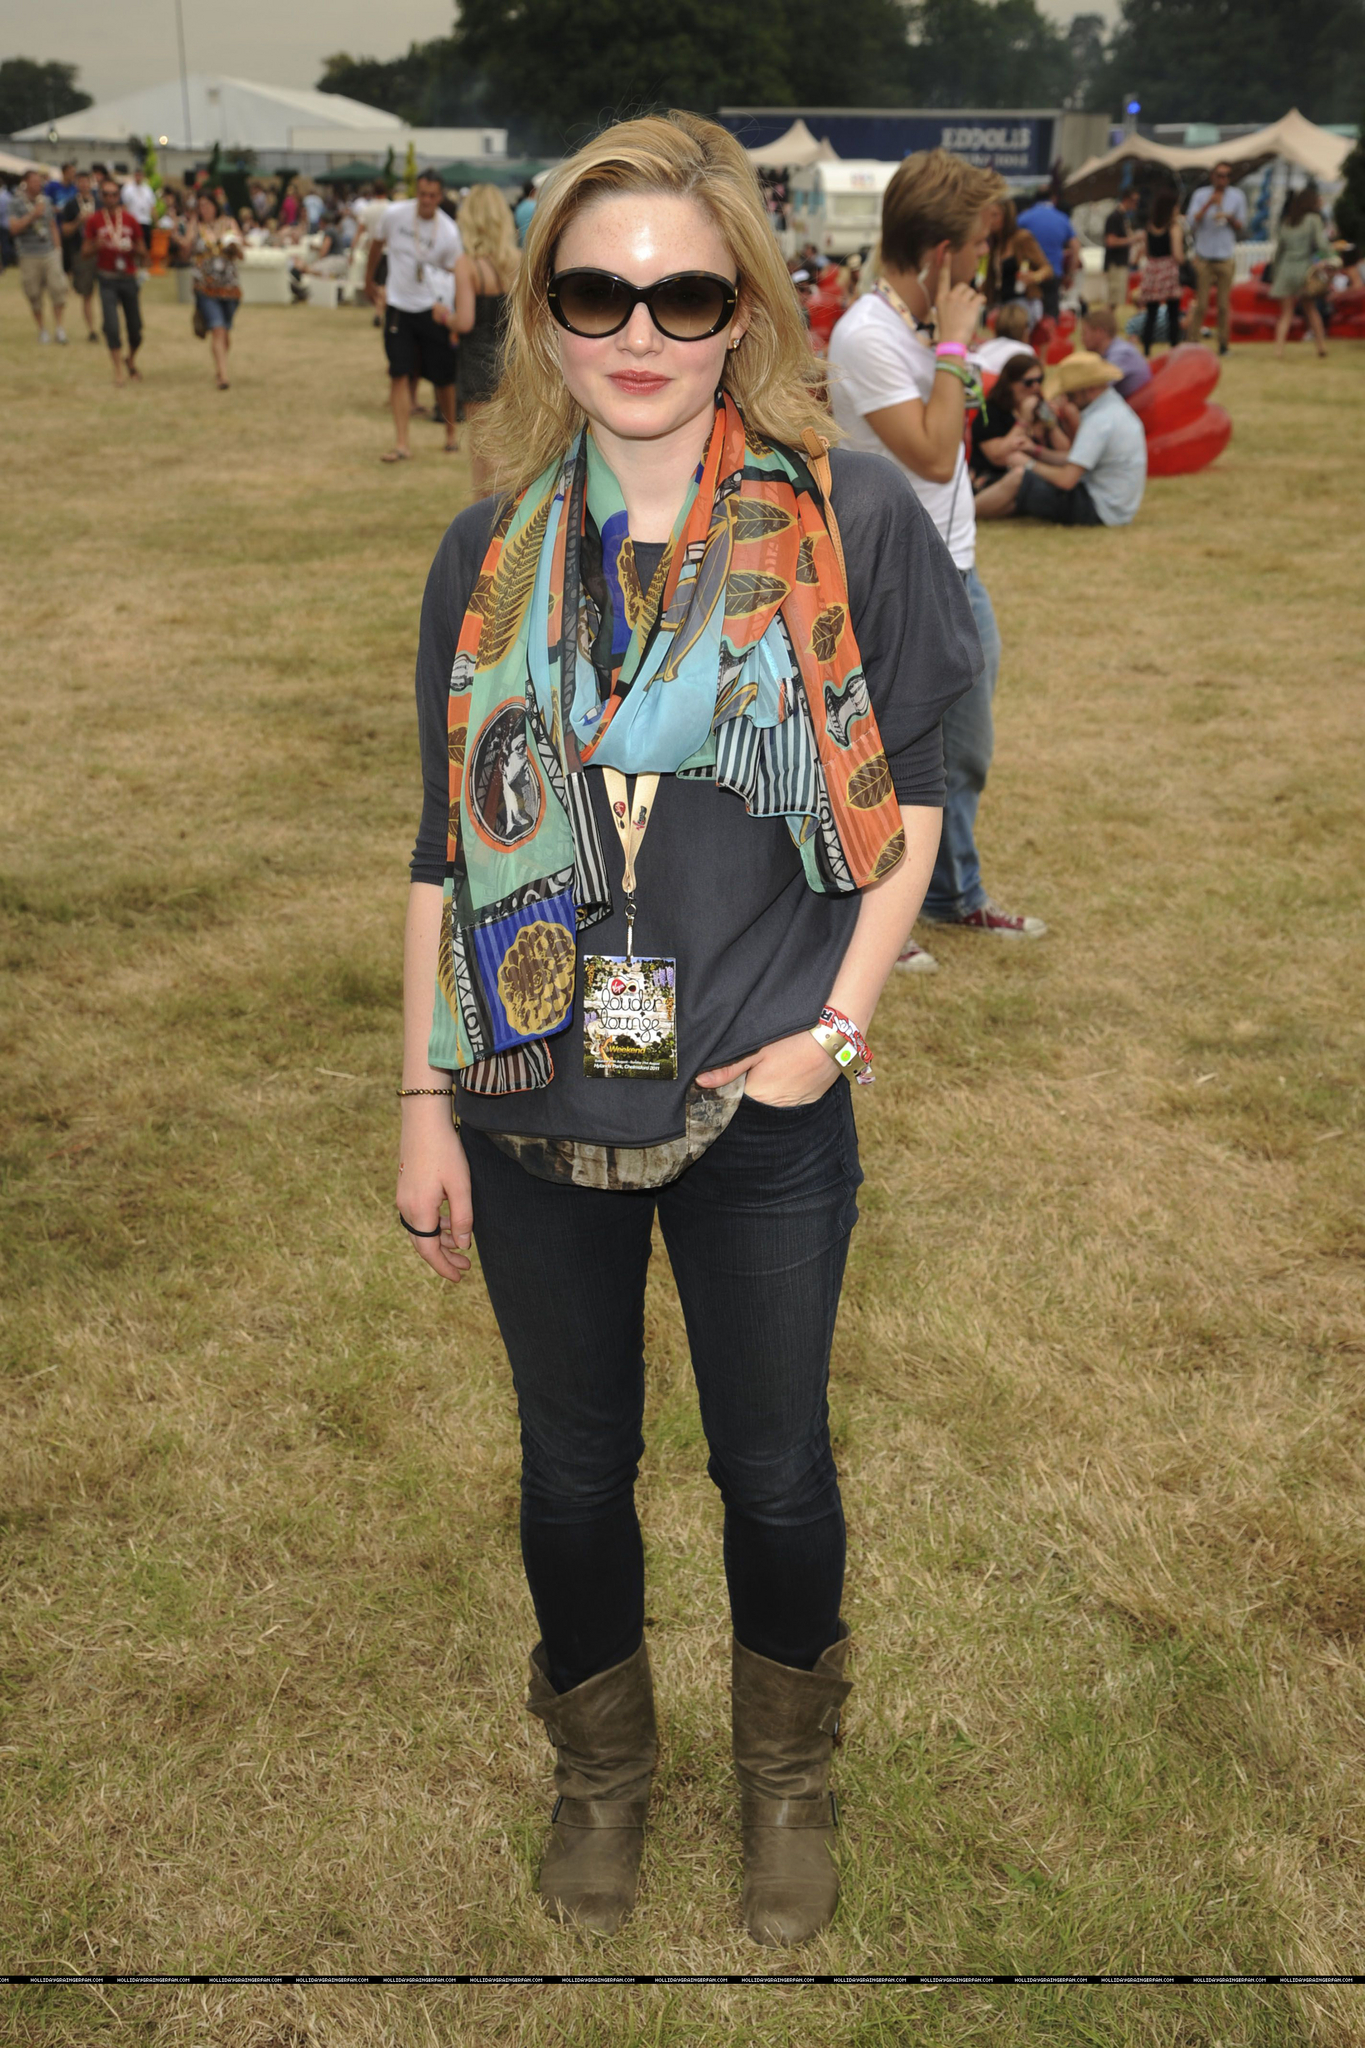 V-Festival-2011-holliday-grainger-322218